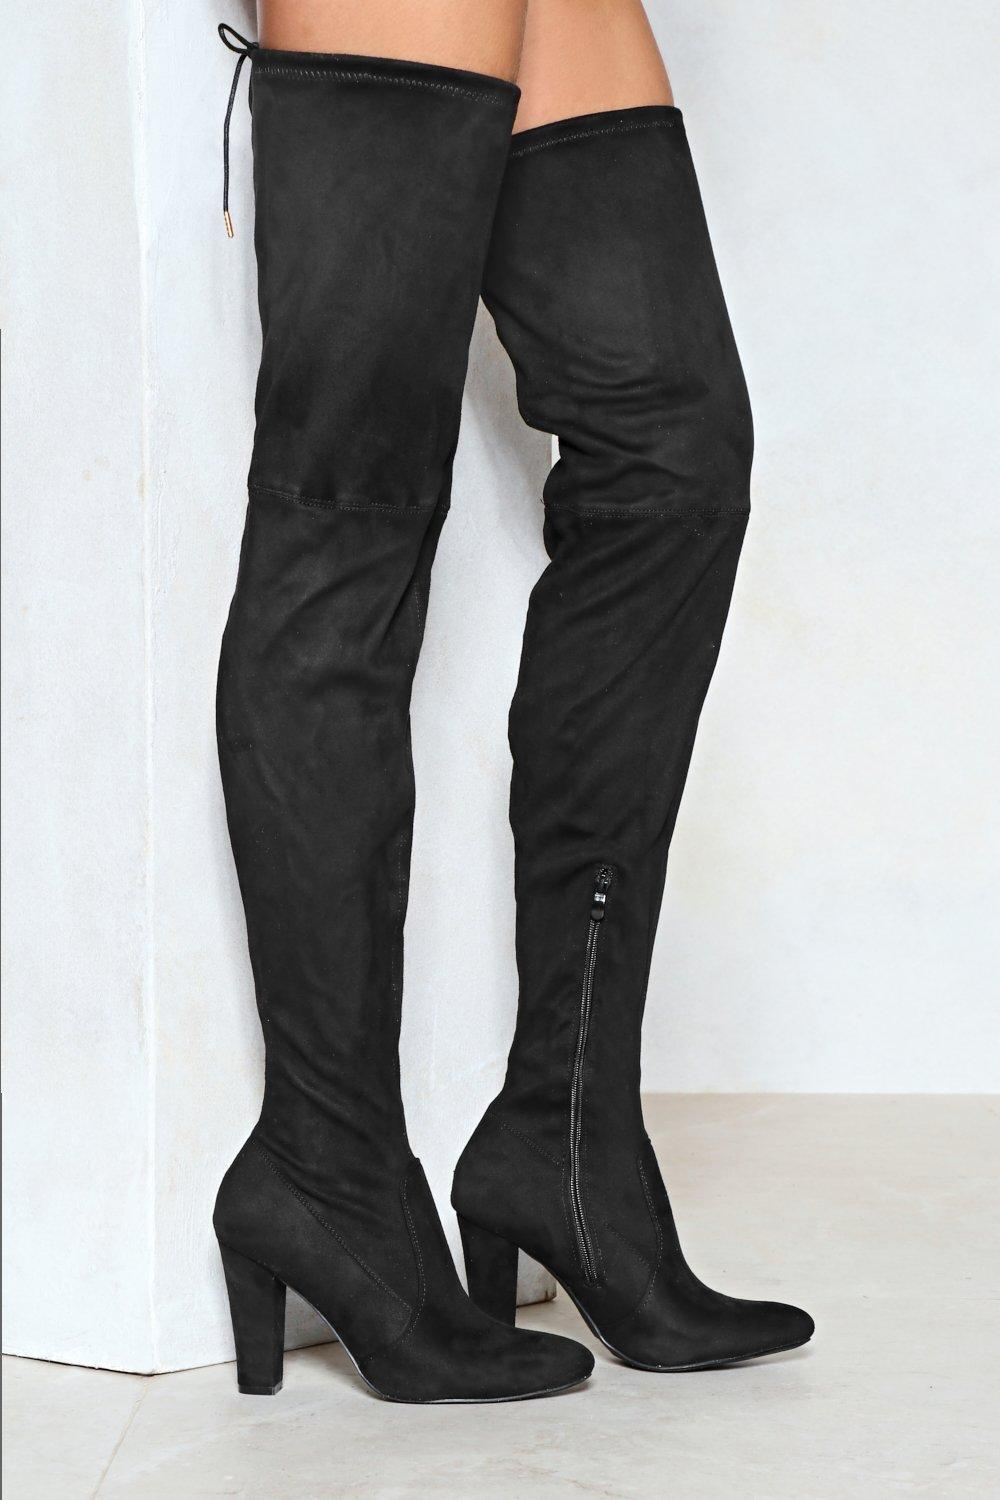 100% authentic ba9f9 1c392 Reach Out Faux Suede Thigh-High Boot   Shop Clothes at Nasty Gal!